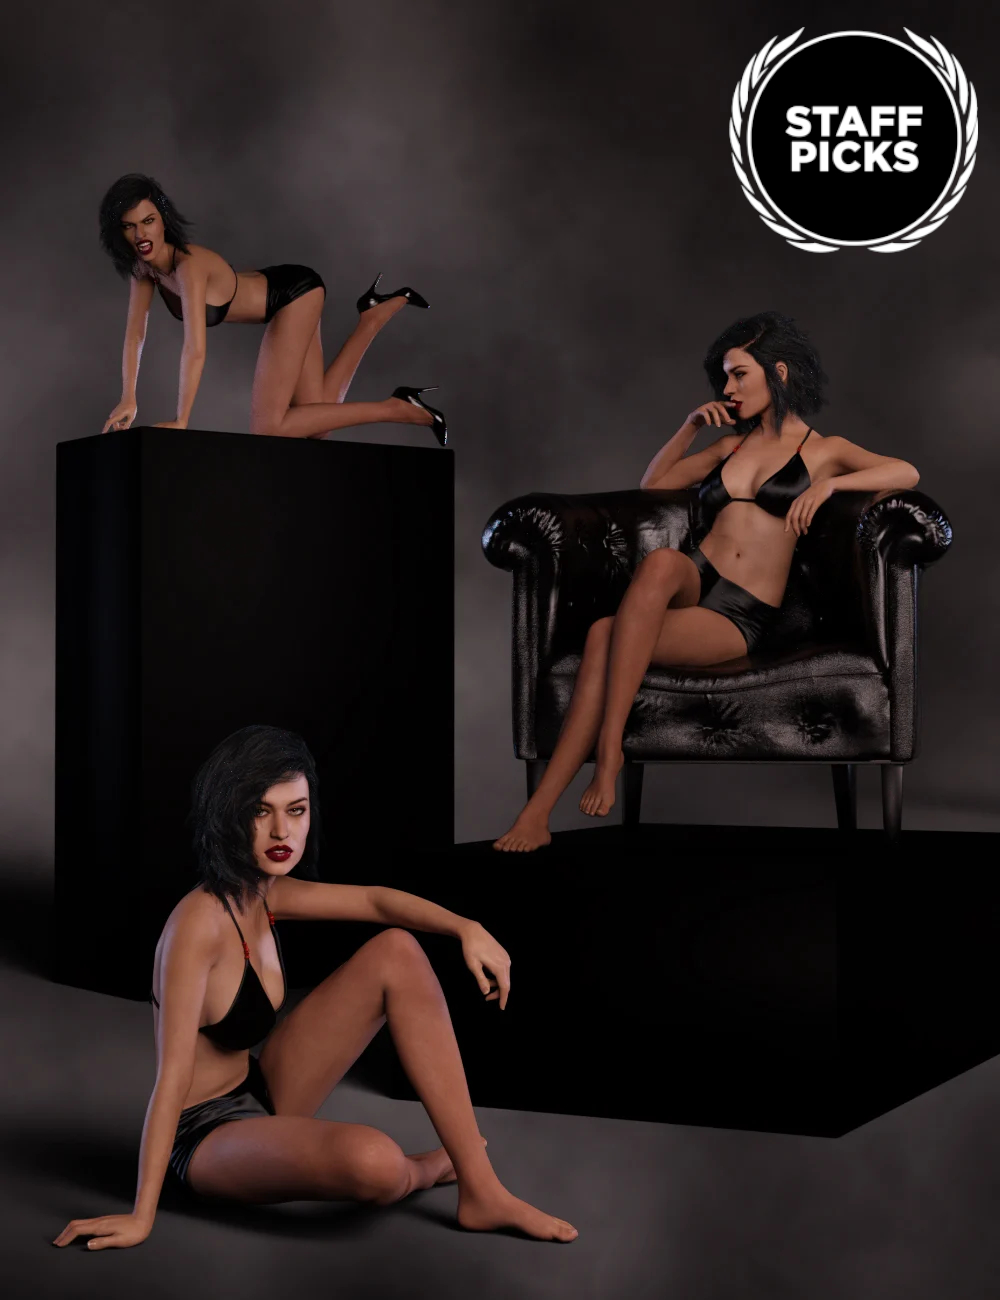 Temptation for Tasha 8 and Genesis 8 Female by: lunchlady, 3D Models by Daz 3D